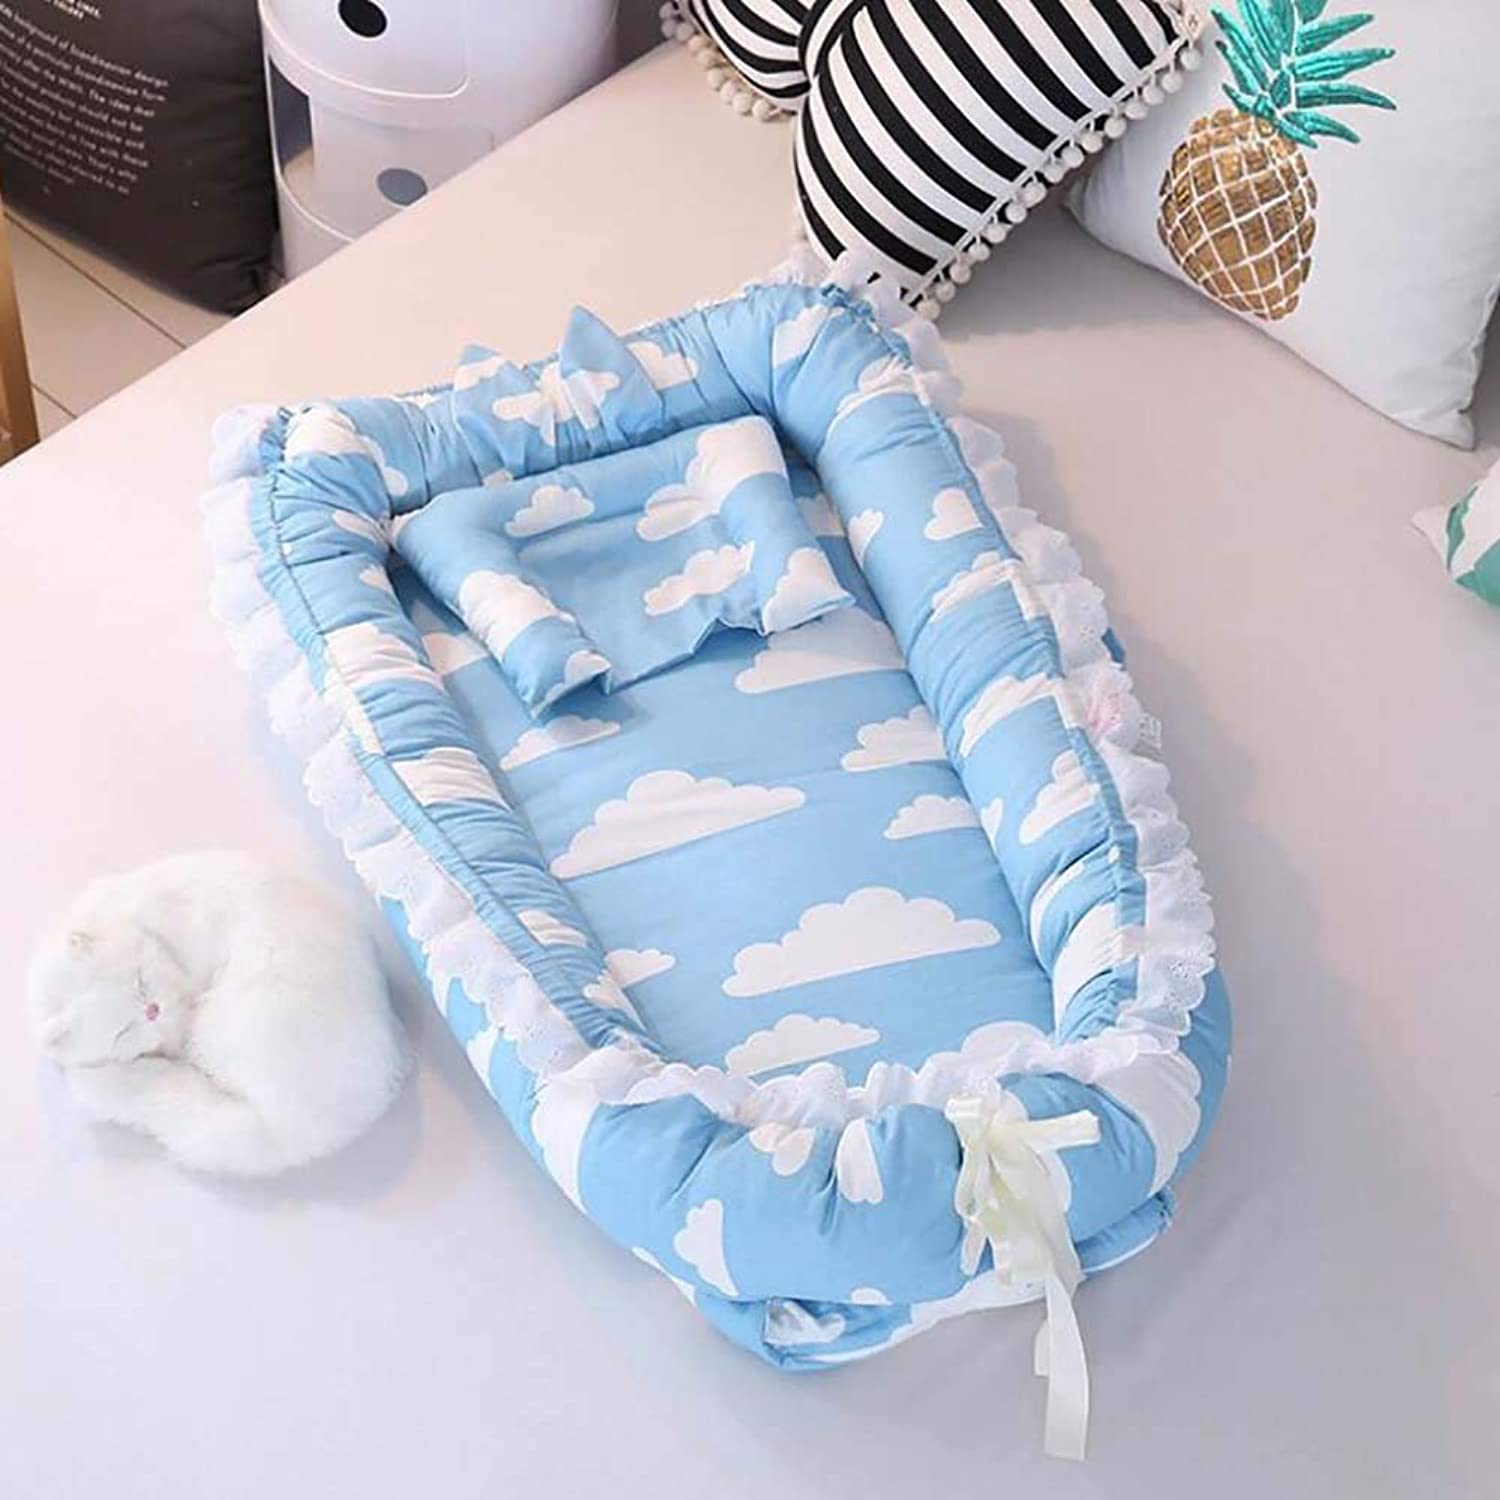 Baby Cot Removable and Washable Baby Isolation Bed Cotton Newborn Bionic Bed Removable and Washable Suitable for Baby from 0 to 24 Months,E